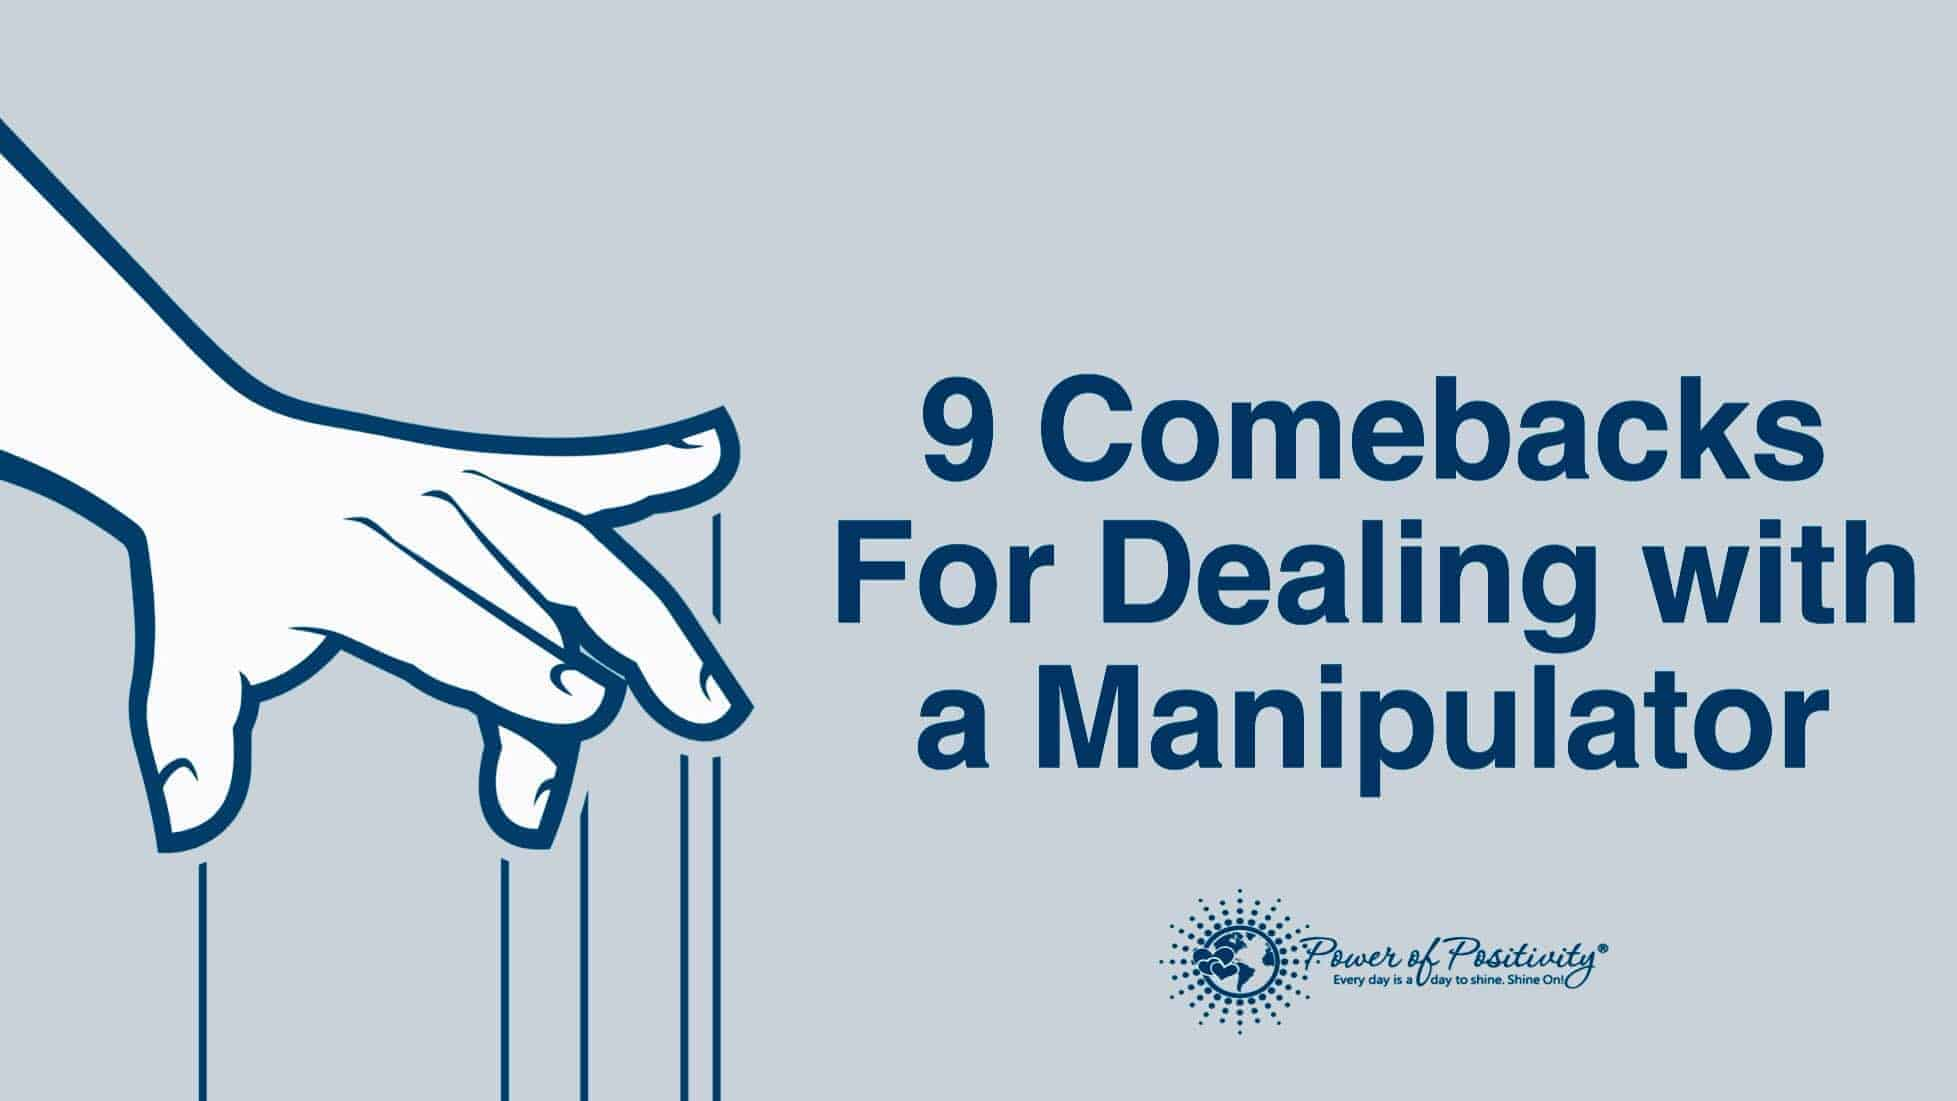 9 Comebacks For Dealing With a Manipulator